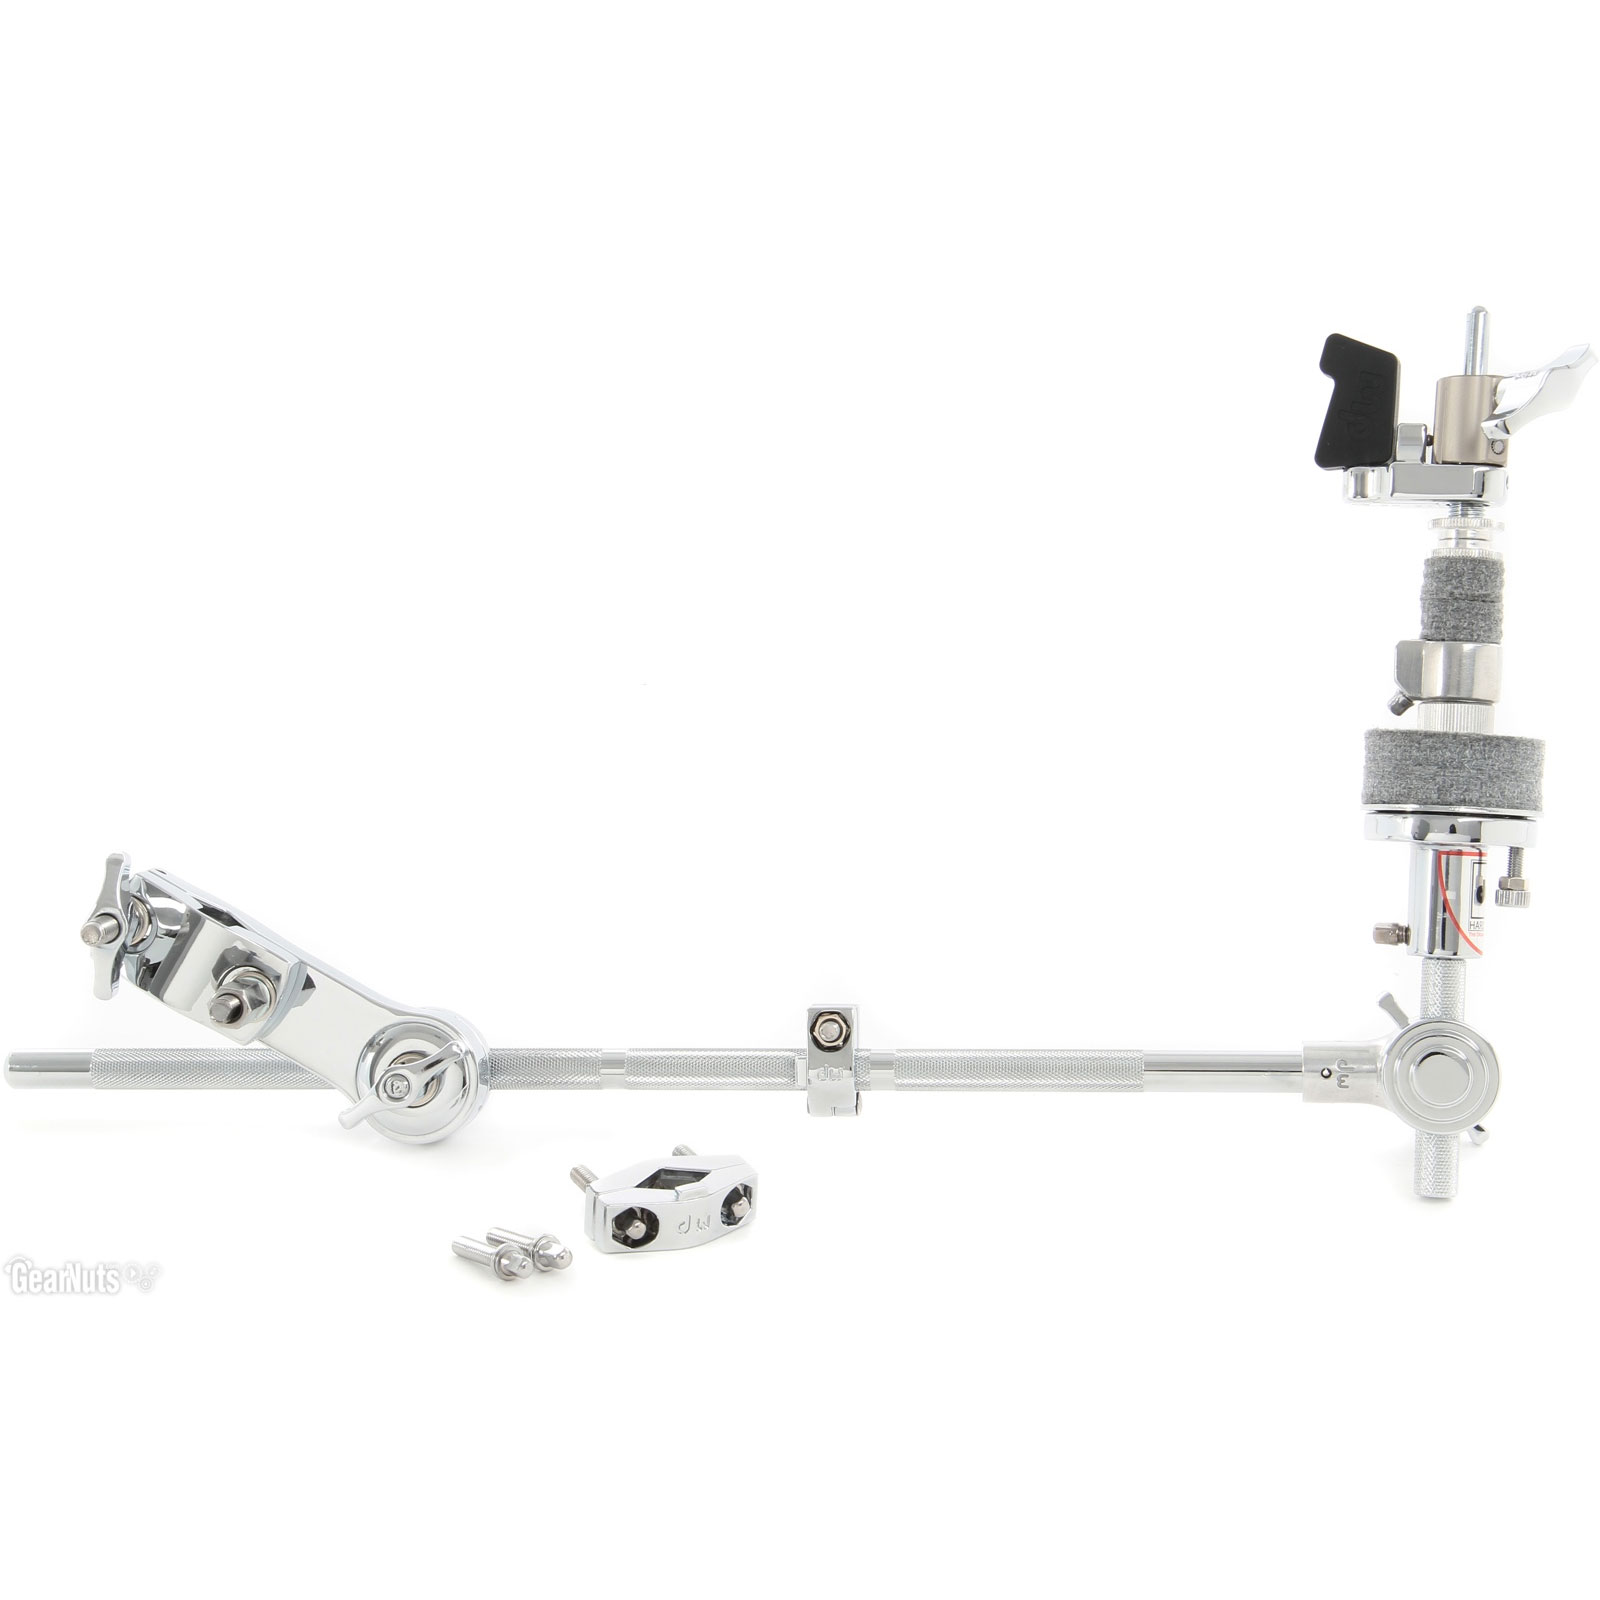 DW 1/2 x 18 Boom Hi Hat Attachment Arm with Mg-3